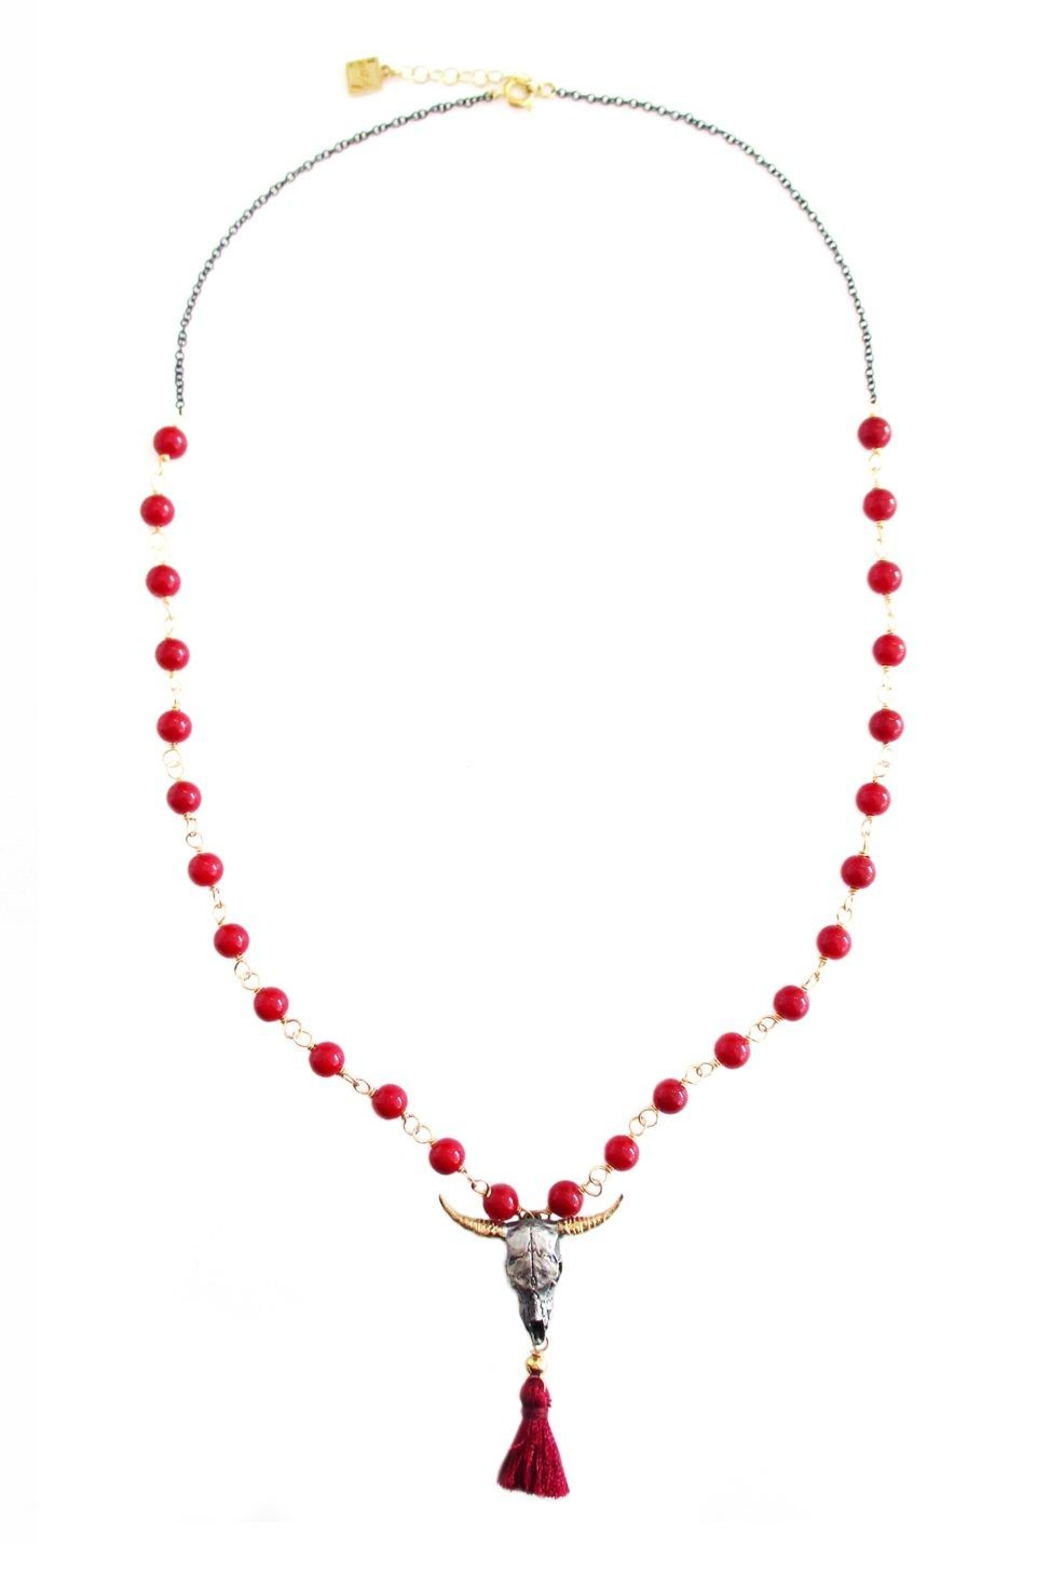 Malia Jewelry Bull, Red-Tassle And Corals Necklace - Main Image